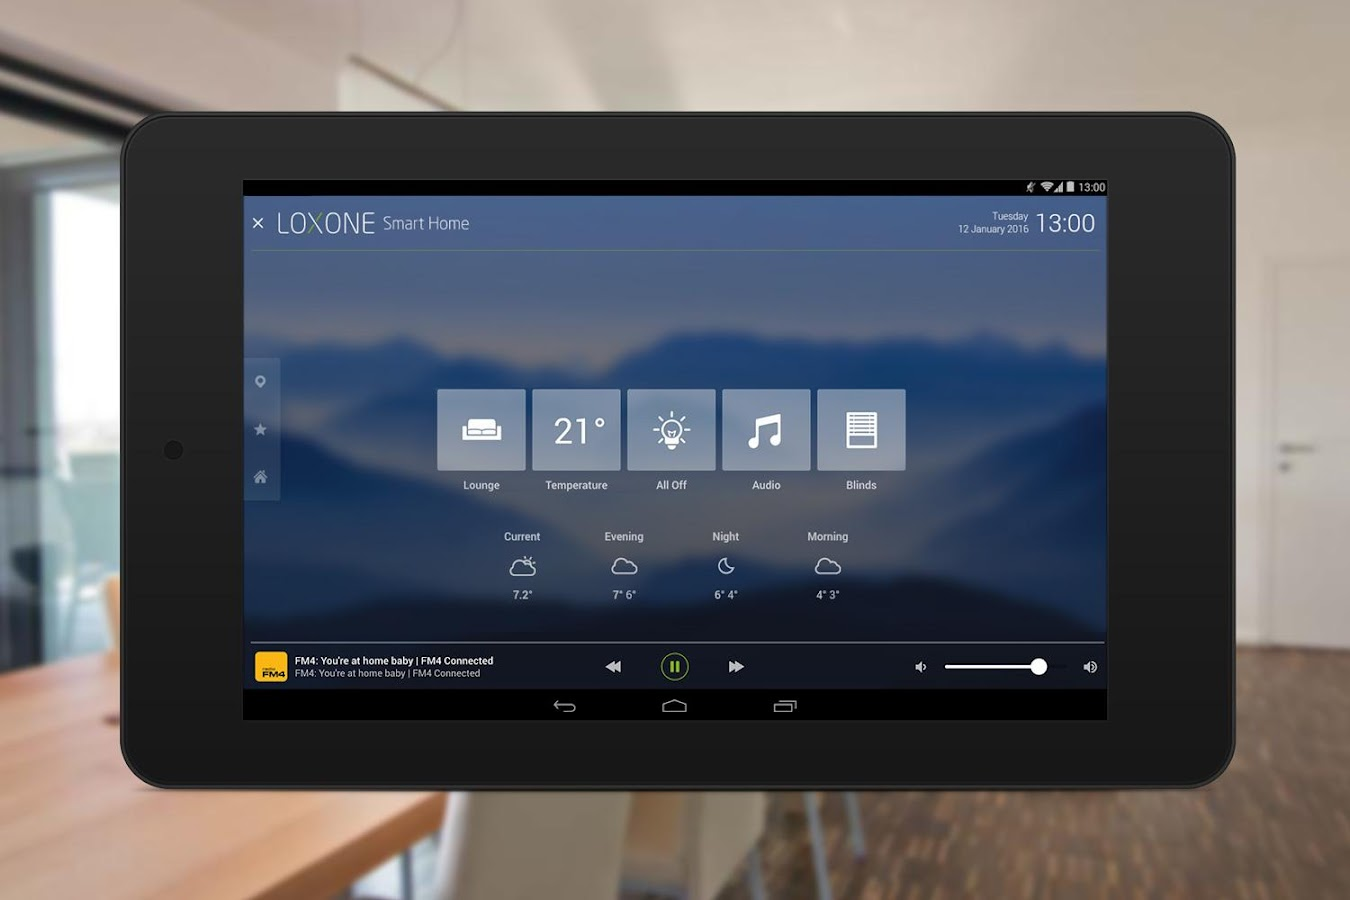 Smart Home App Loxone Smart Home Android Apps On Google Play